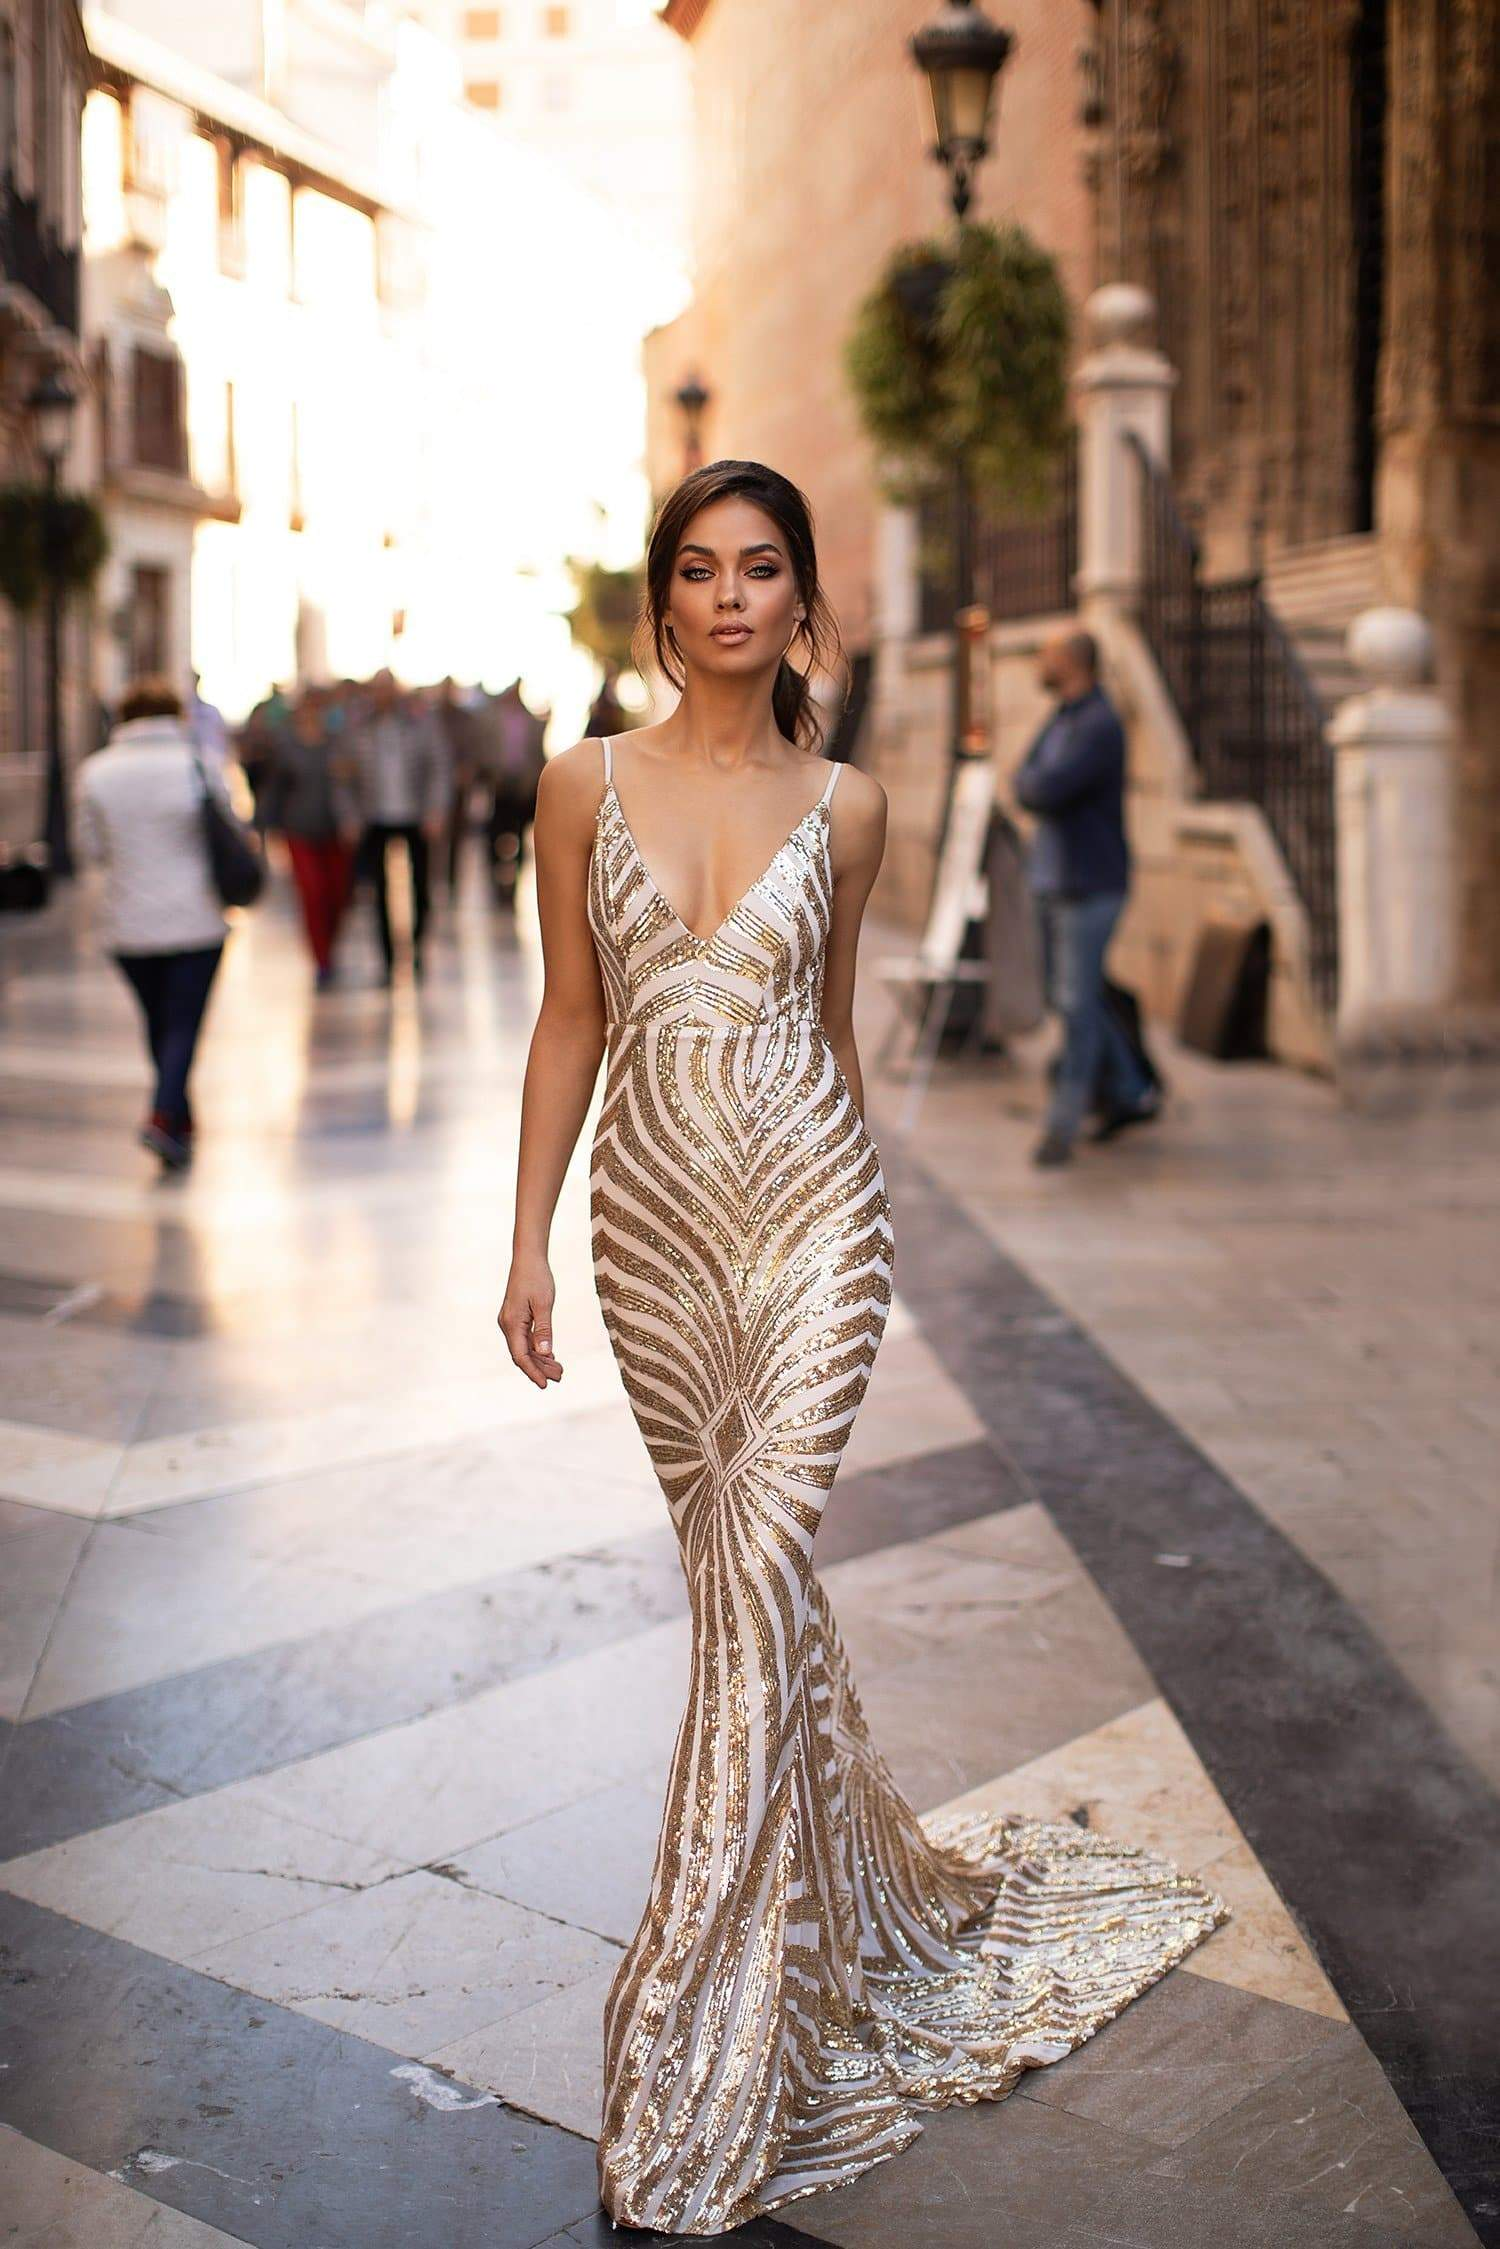 A&N Justina - Gold Patterned Sequin Gown with Plunge Neck and Low Back